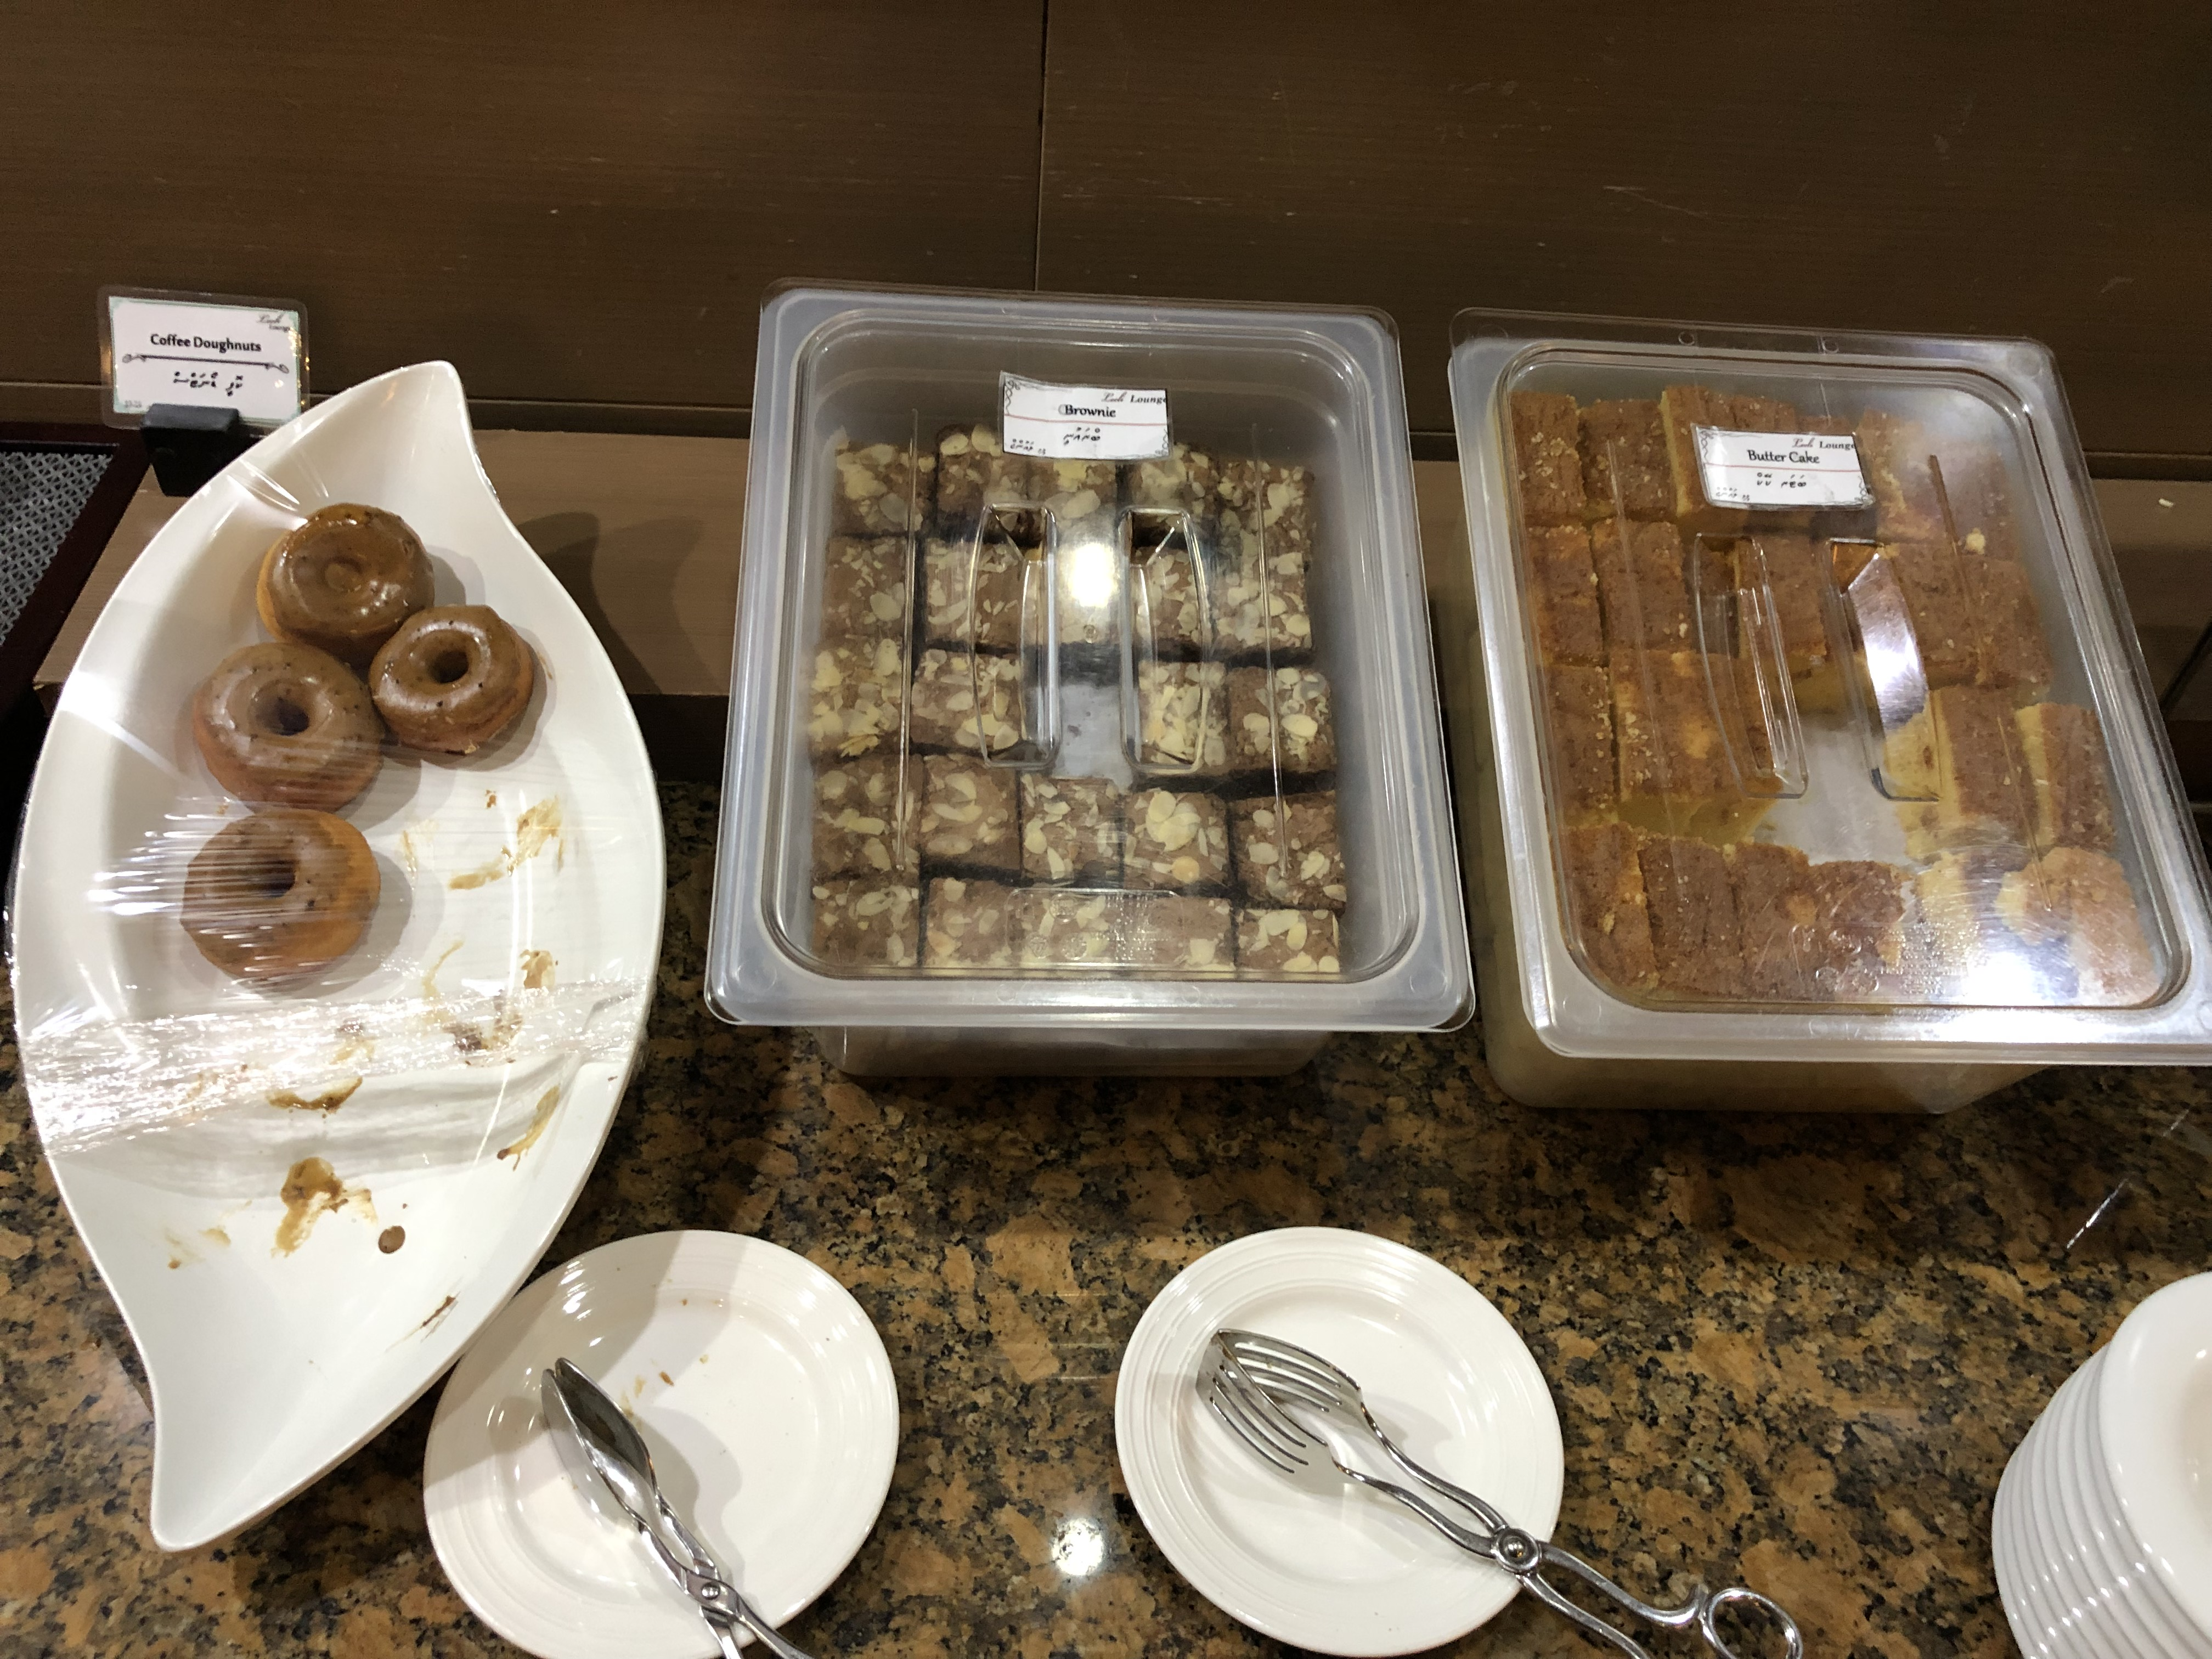 Leeli Lounge pastries